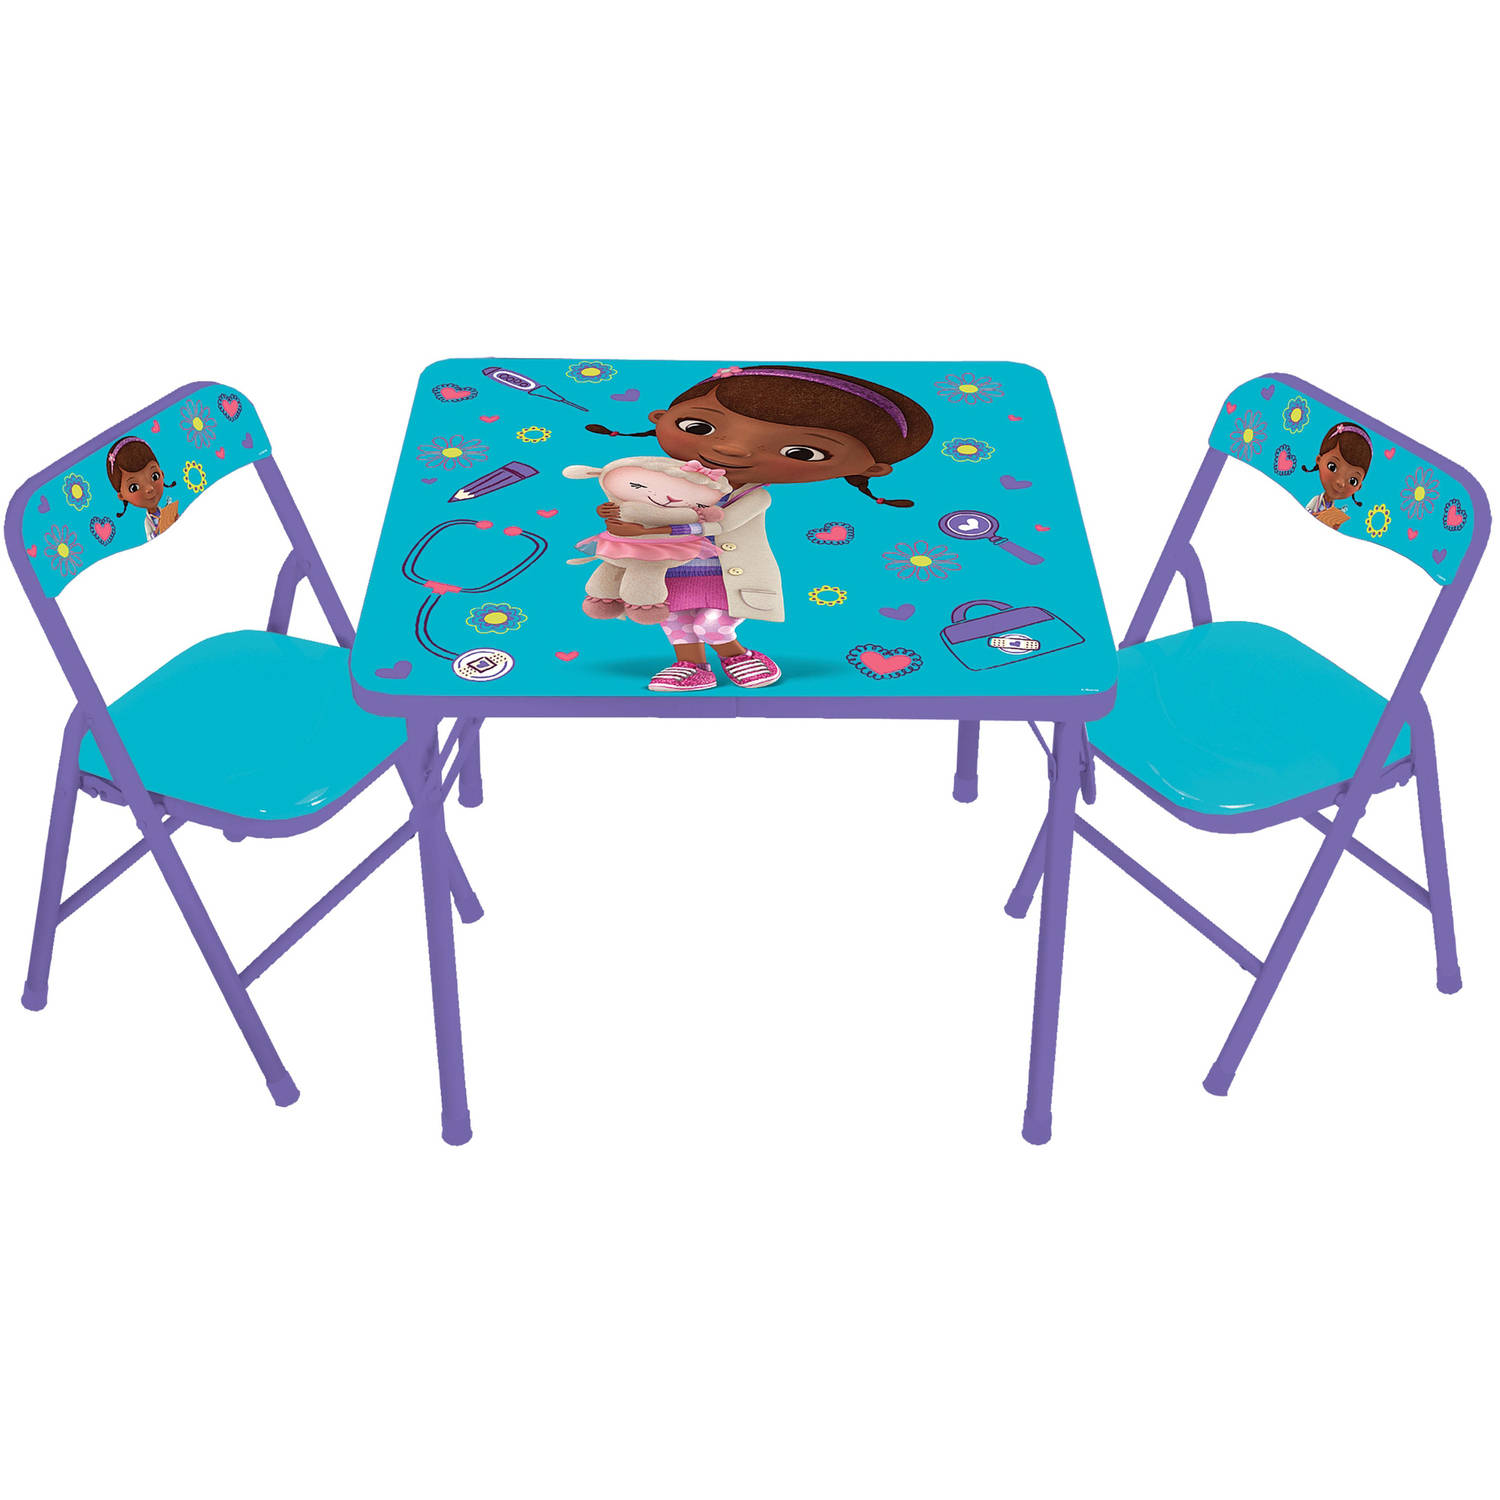 doc mcstuffins erasable activity table and chair set blue church chairs wedding decorations roselawnlutheran